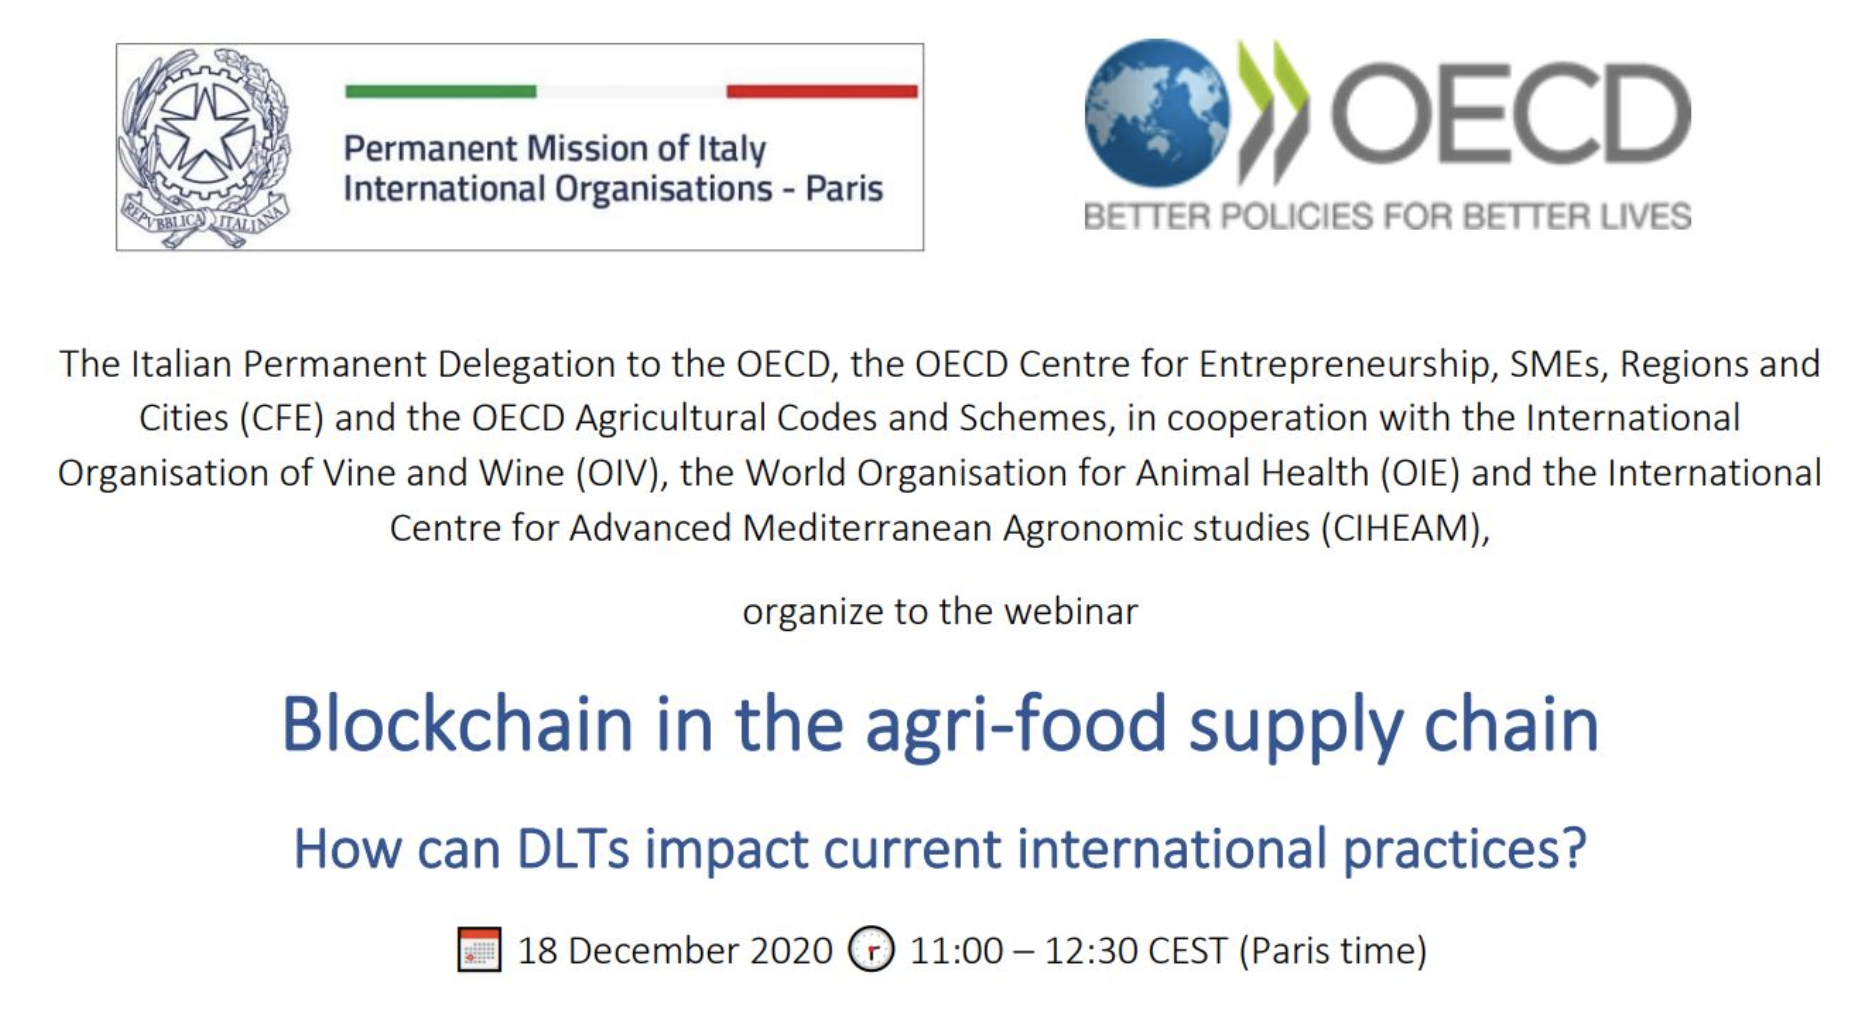 Webinar Blockchain in the agri-food supply chain – How can DLTs impact current international practices?